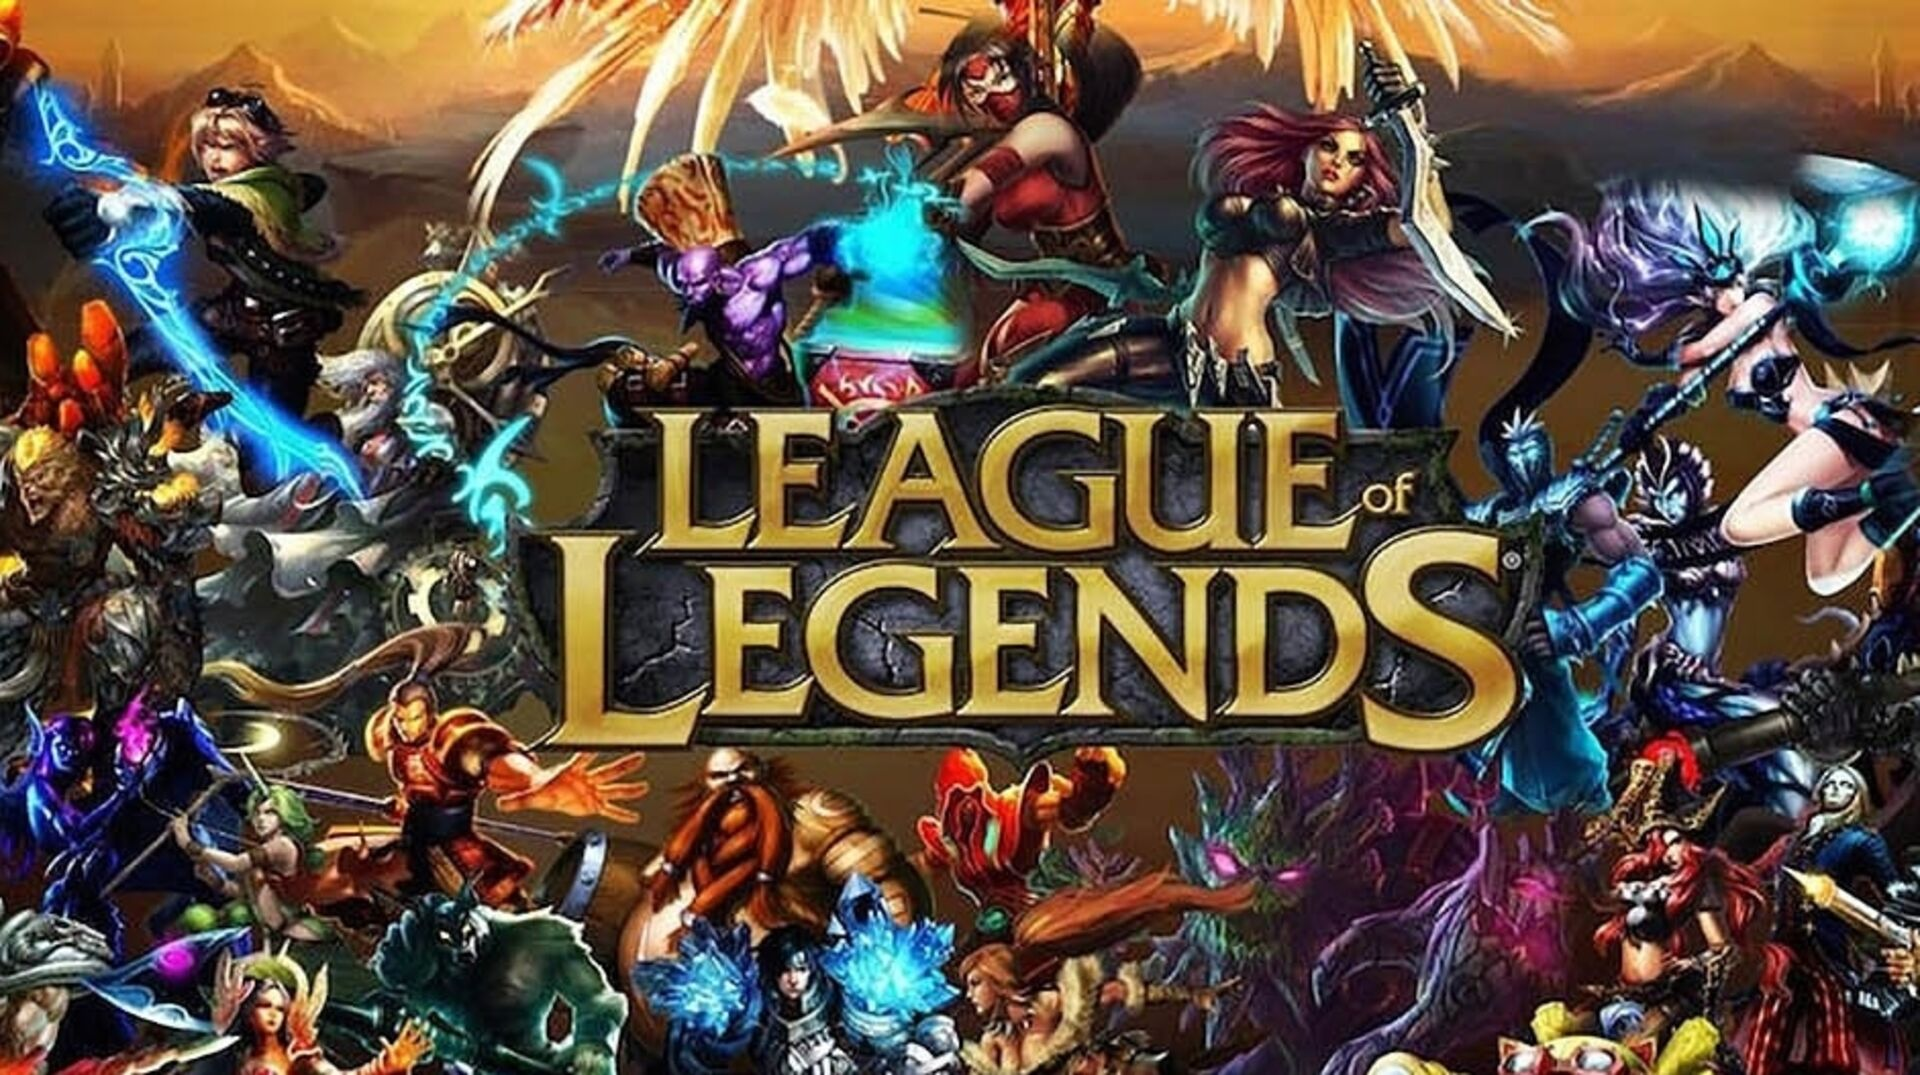 League Of Legends Studio Staff Reportedly Planning Walkouts